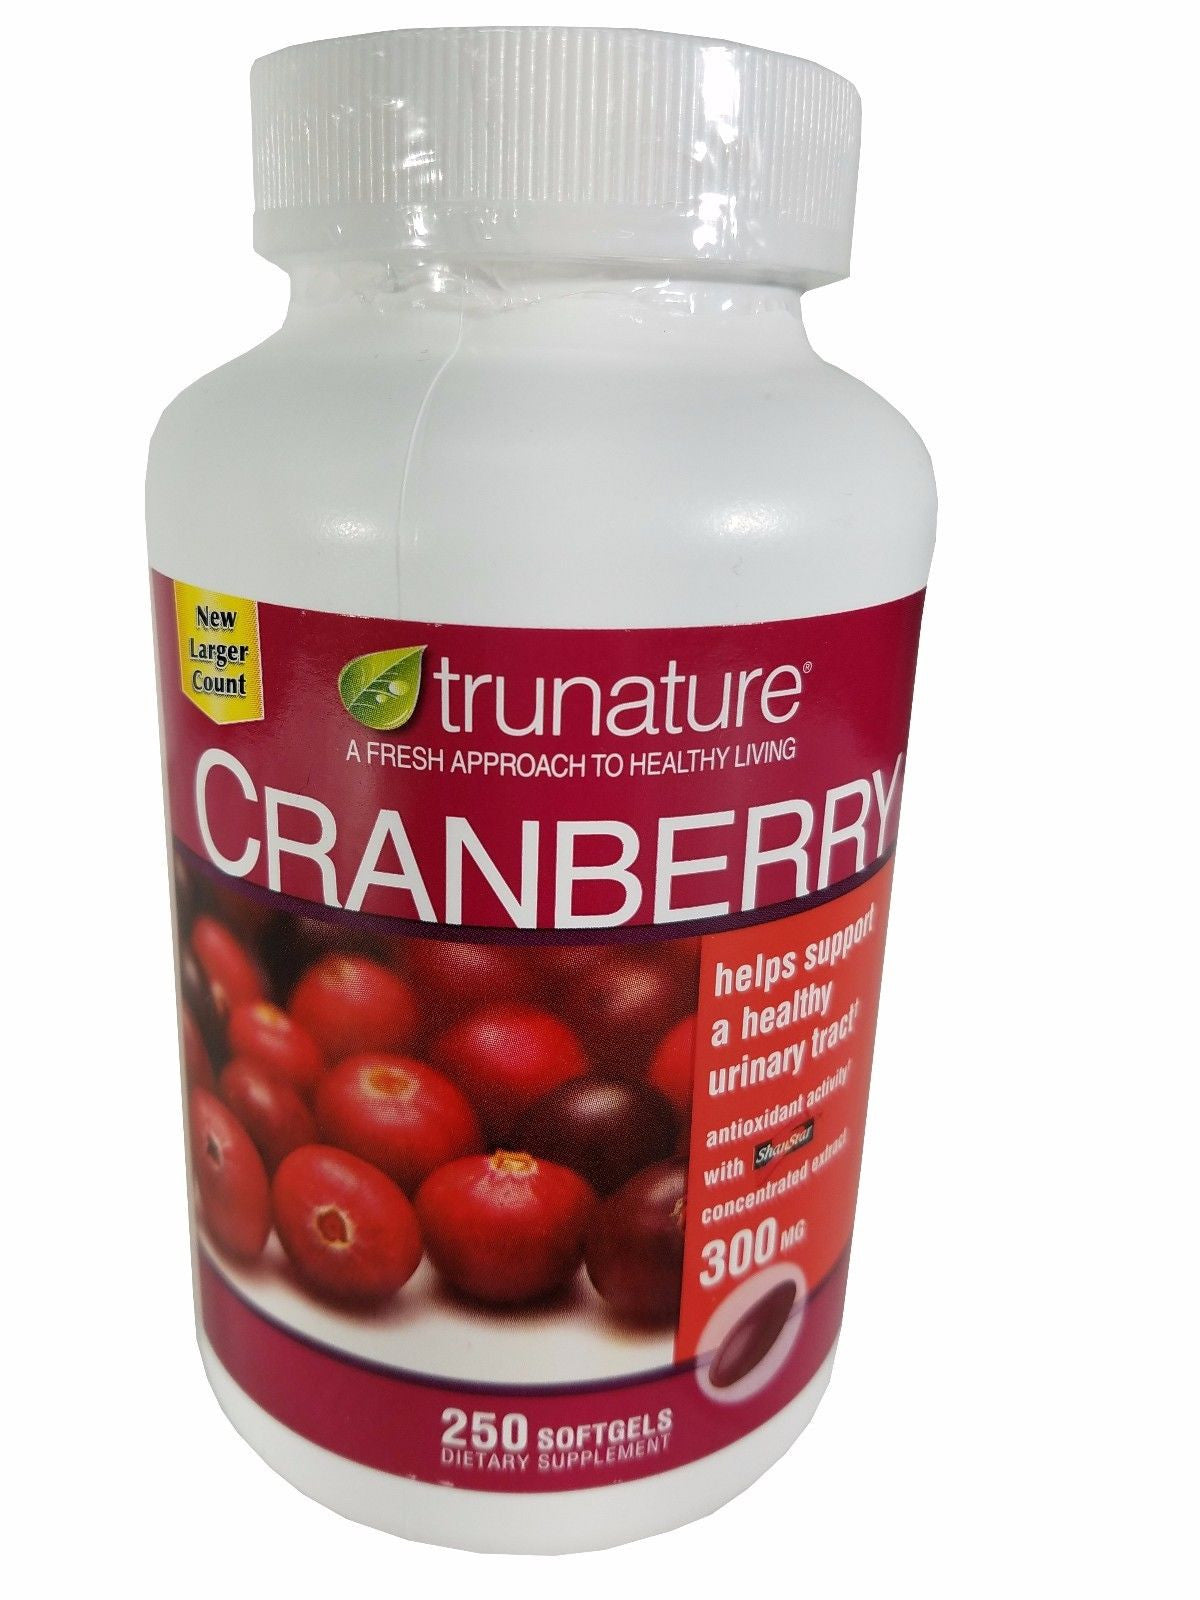 Trunature Cranberry Supports a Healthy Urinary Tract 300 mg 250 Softgels